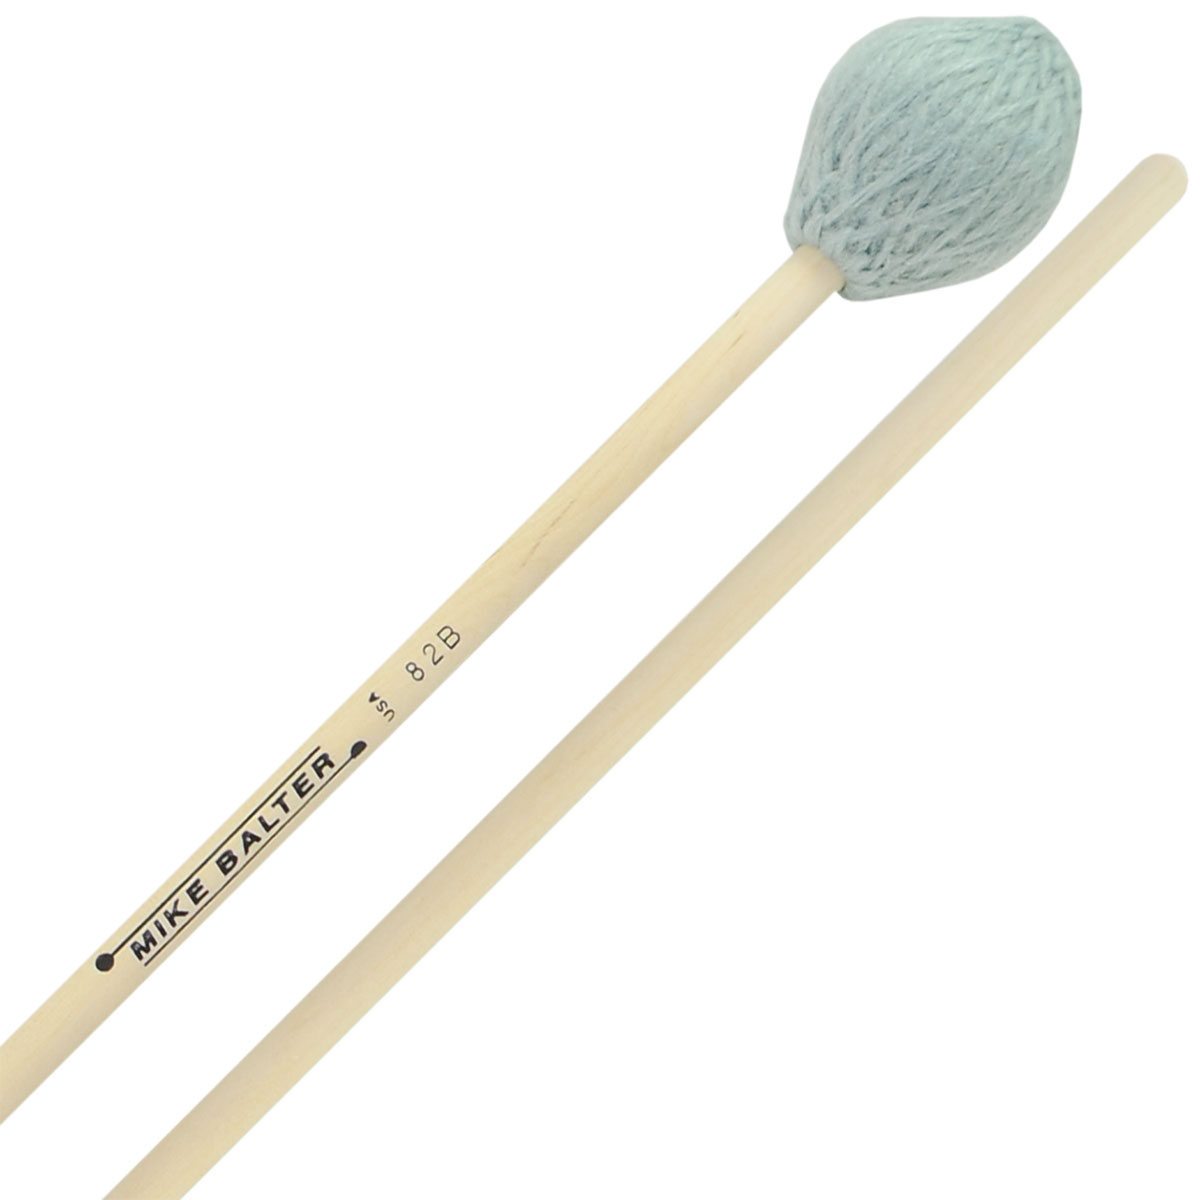 Mike Balter Contemporary Series Medium Hard Marimba Mallets with Birch Handles